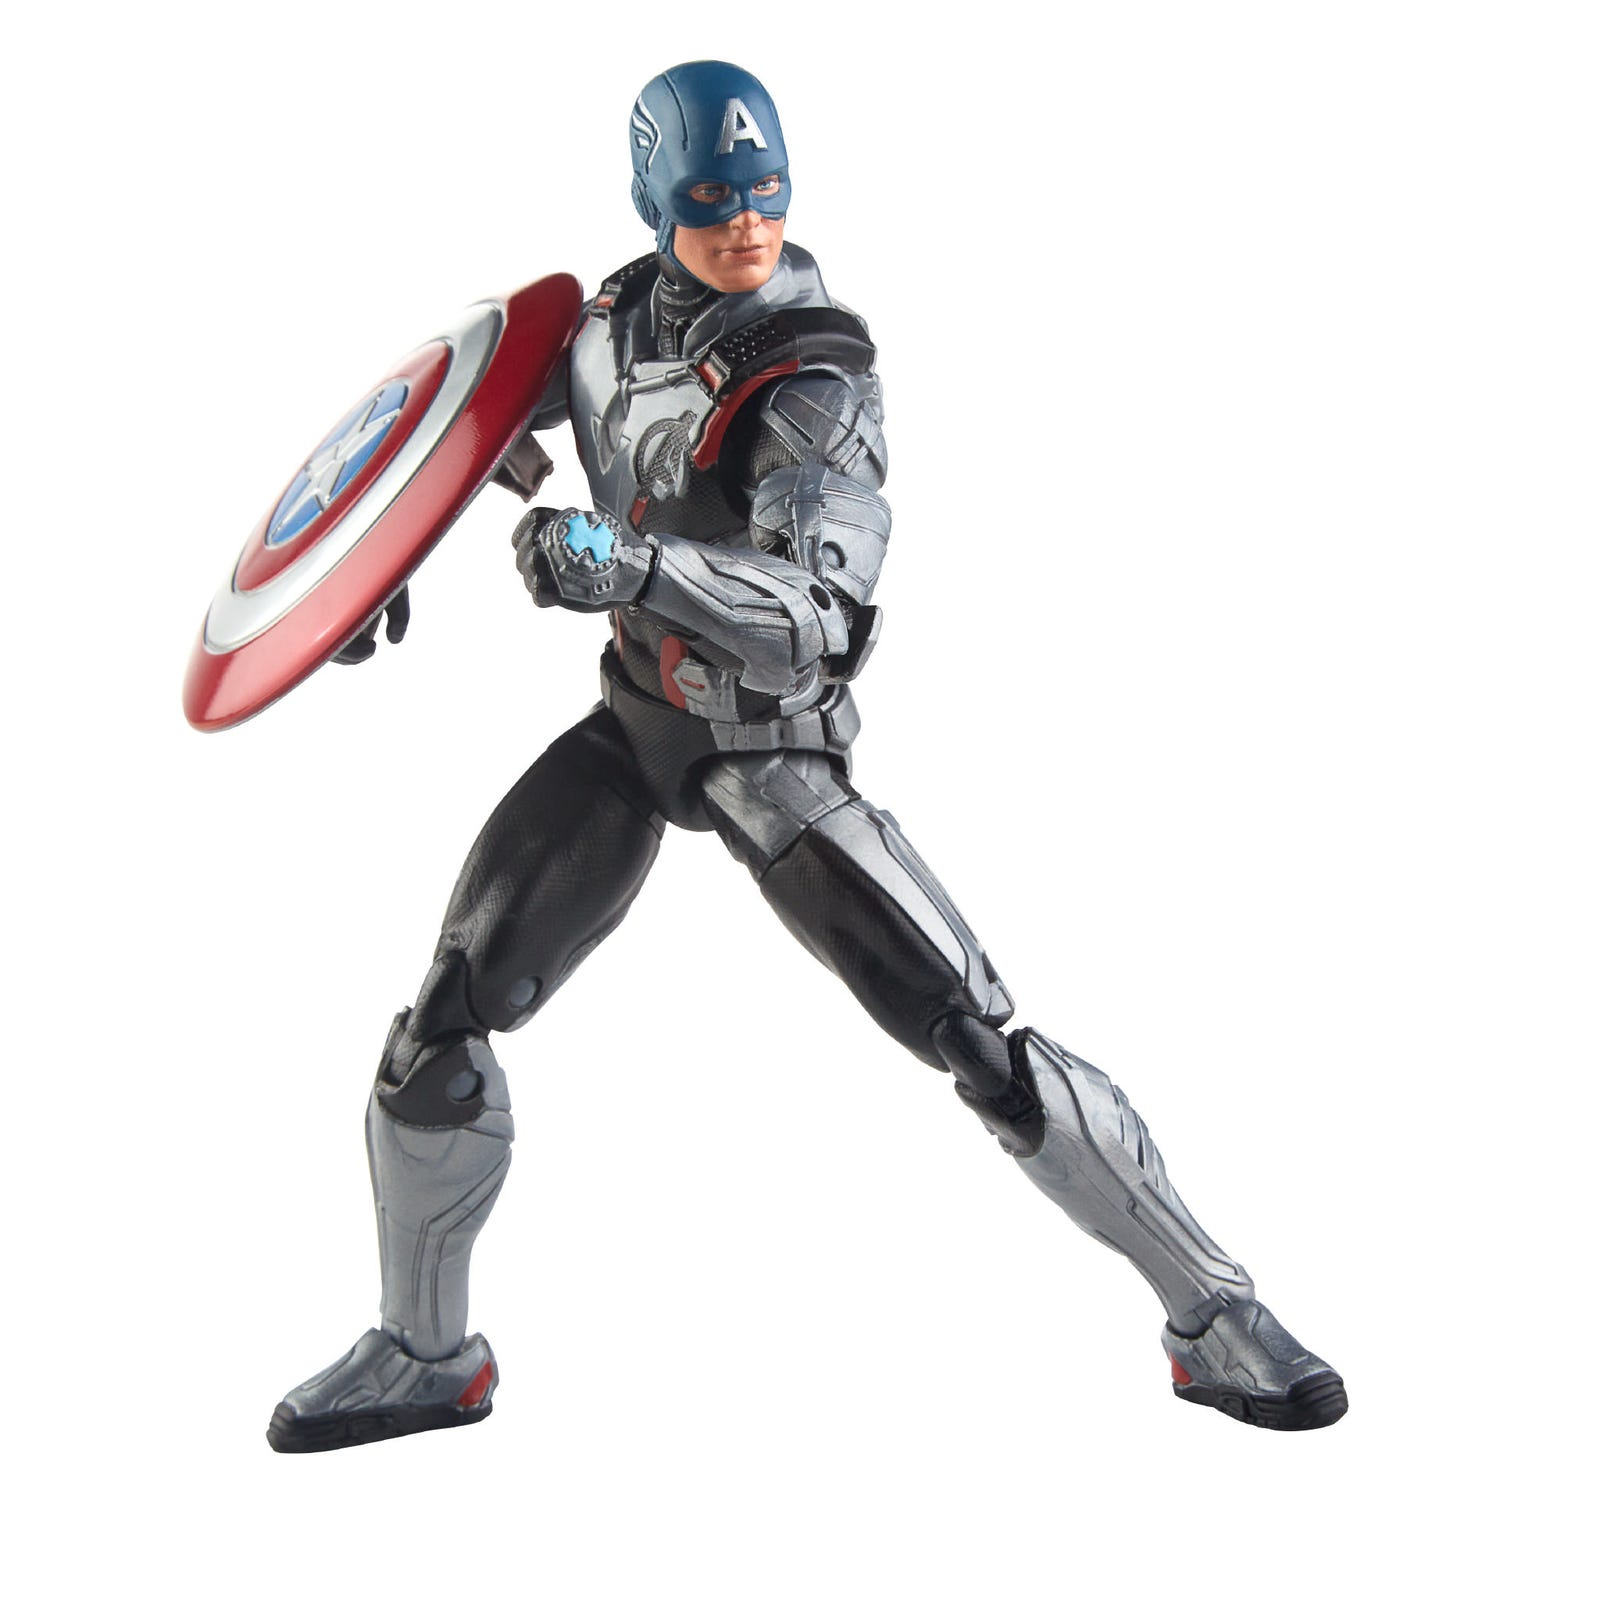 The 6-Inch Marvel Legends Avengers: Endgame Captain America. All these figures will retail for $20.